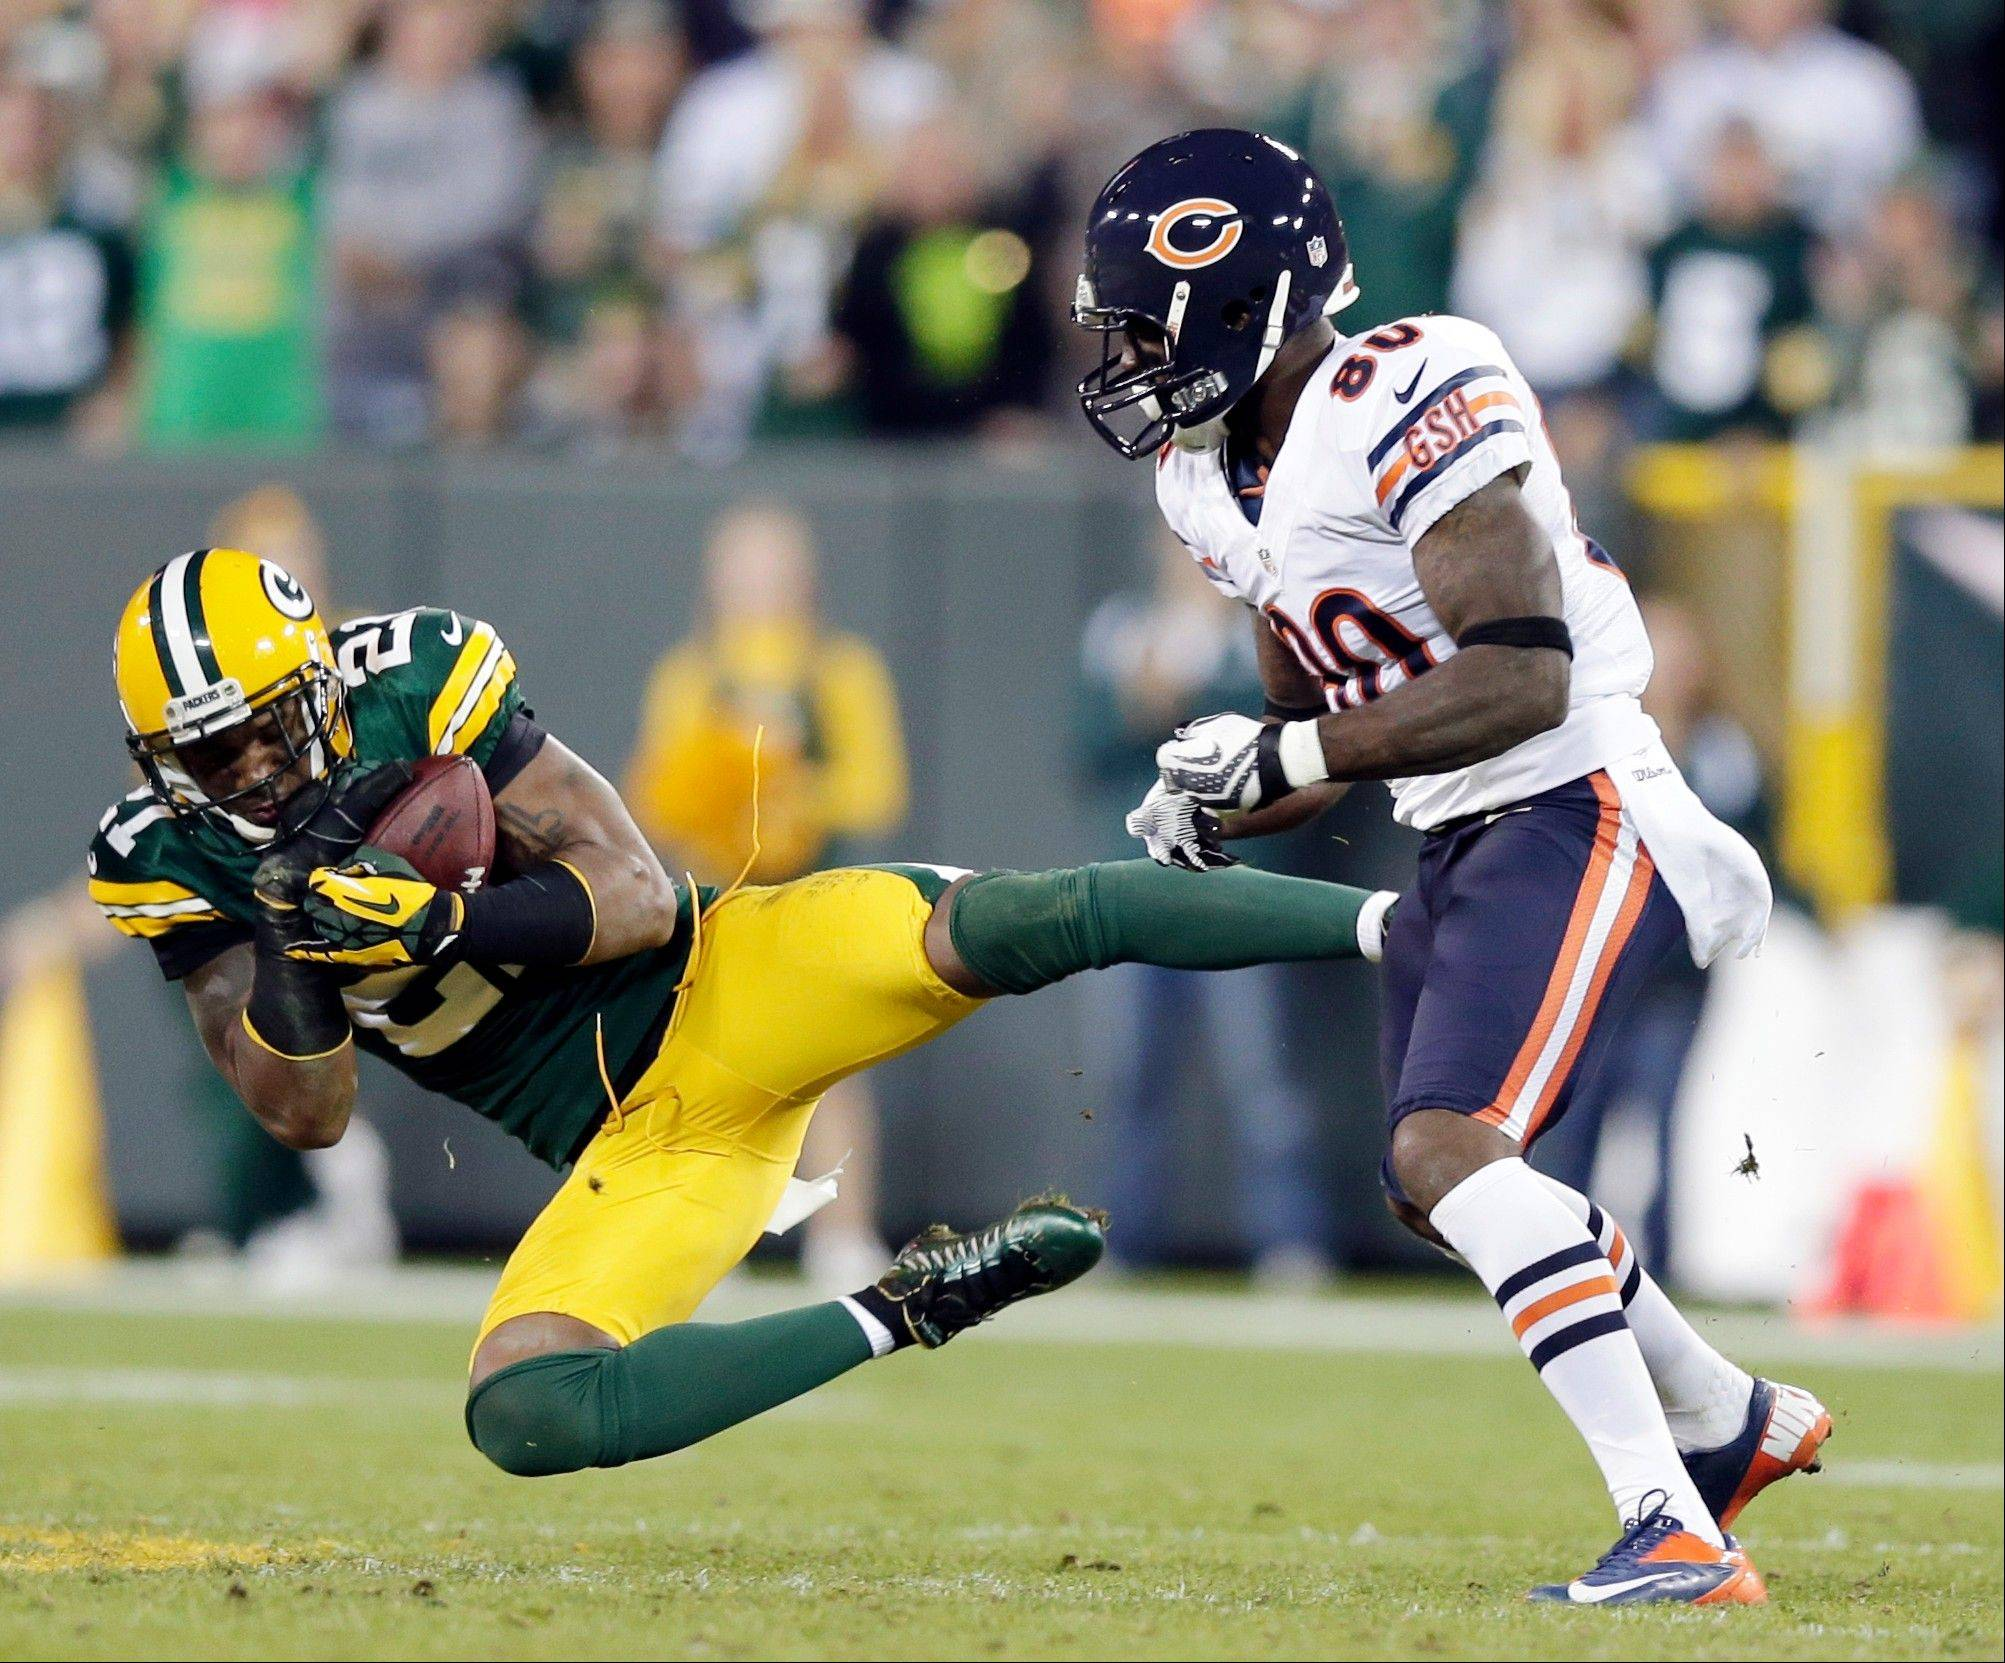 Green Bay Packers defensive back Charles Woodson intercepts a pass in front of Bears wide receiver Earl Bennett during the second half earlier this season. Packers coach Mike McCarthy says Woodson won't play against the Bears.